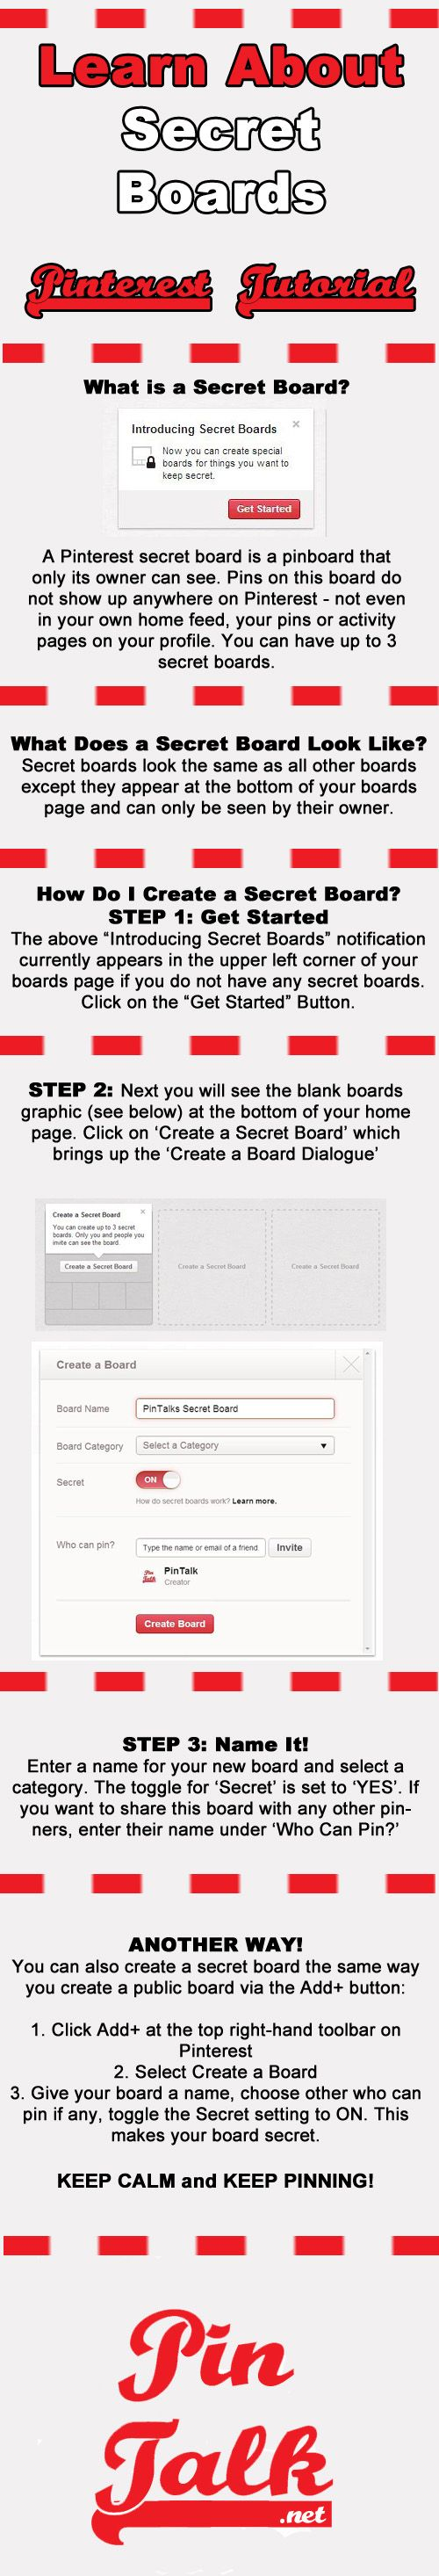 Pinterest Secret Boards Tutorial - NEW! What is a Secret Board? and How to Create a Secret Board